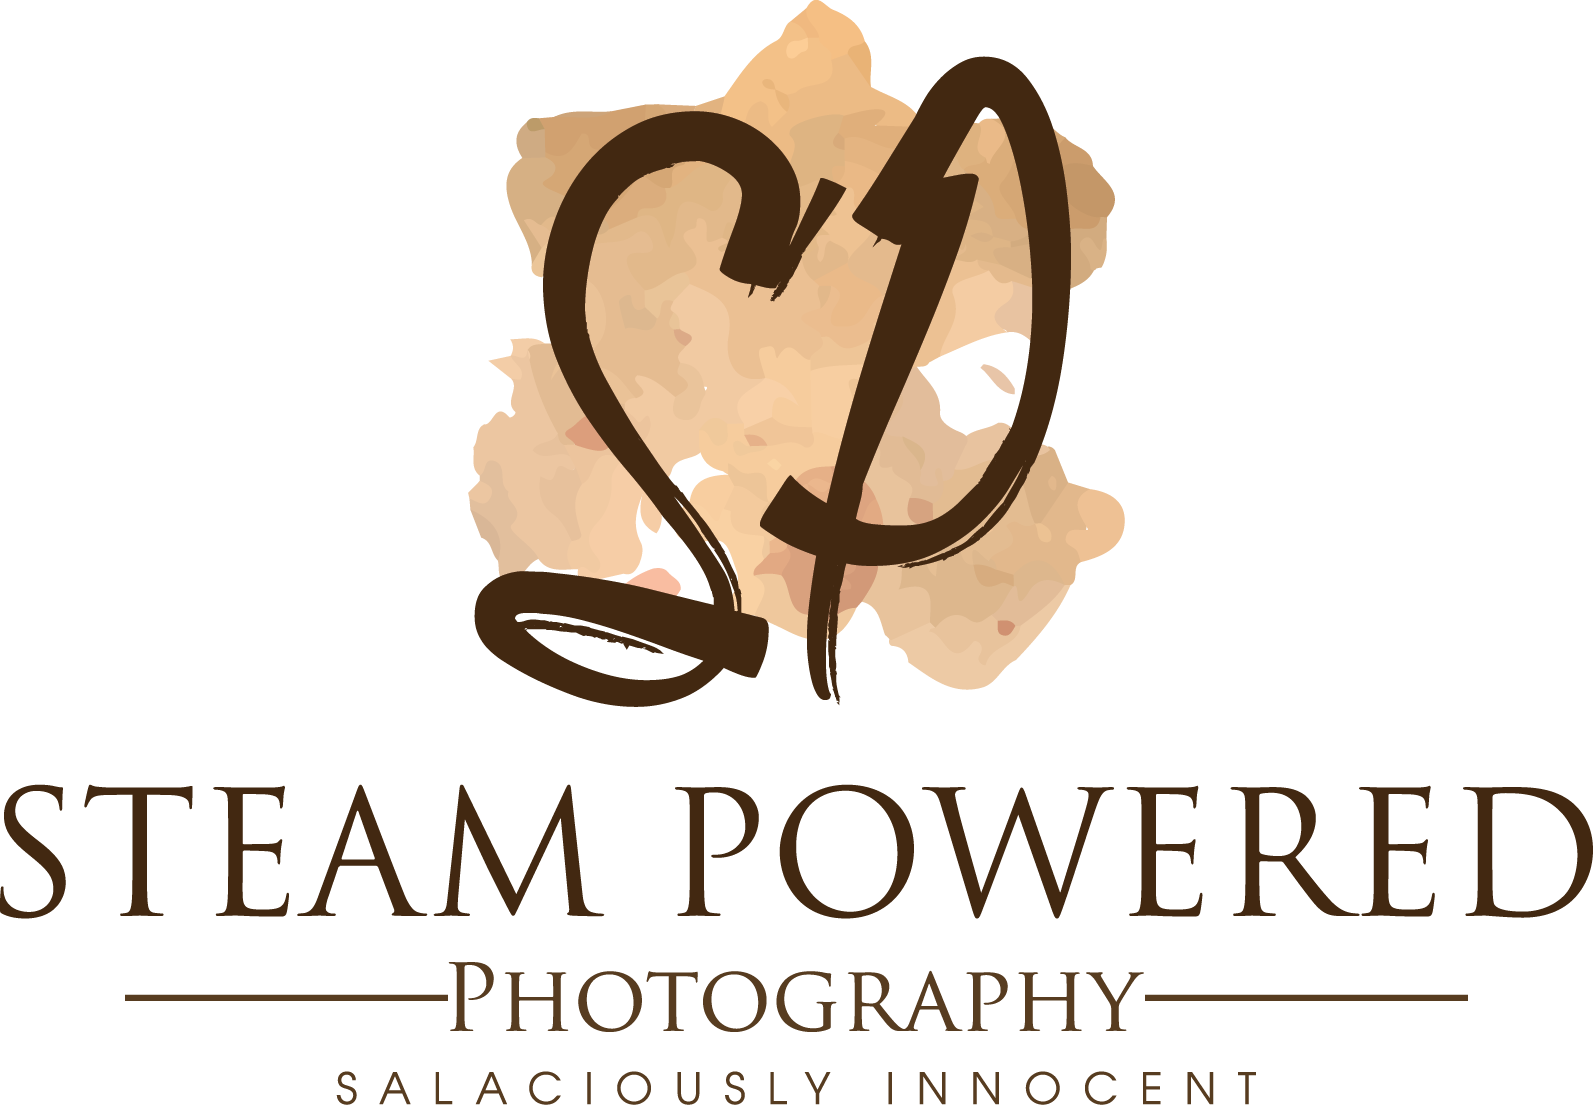 Steam Powered Photography